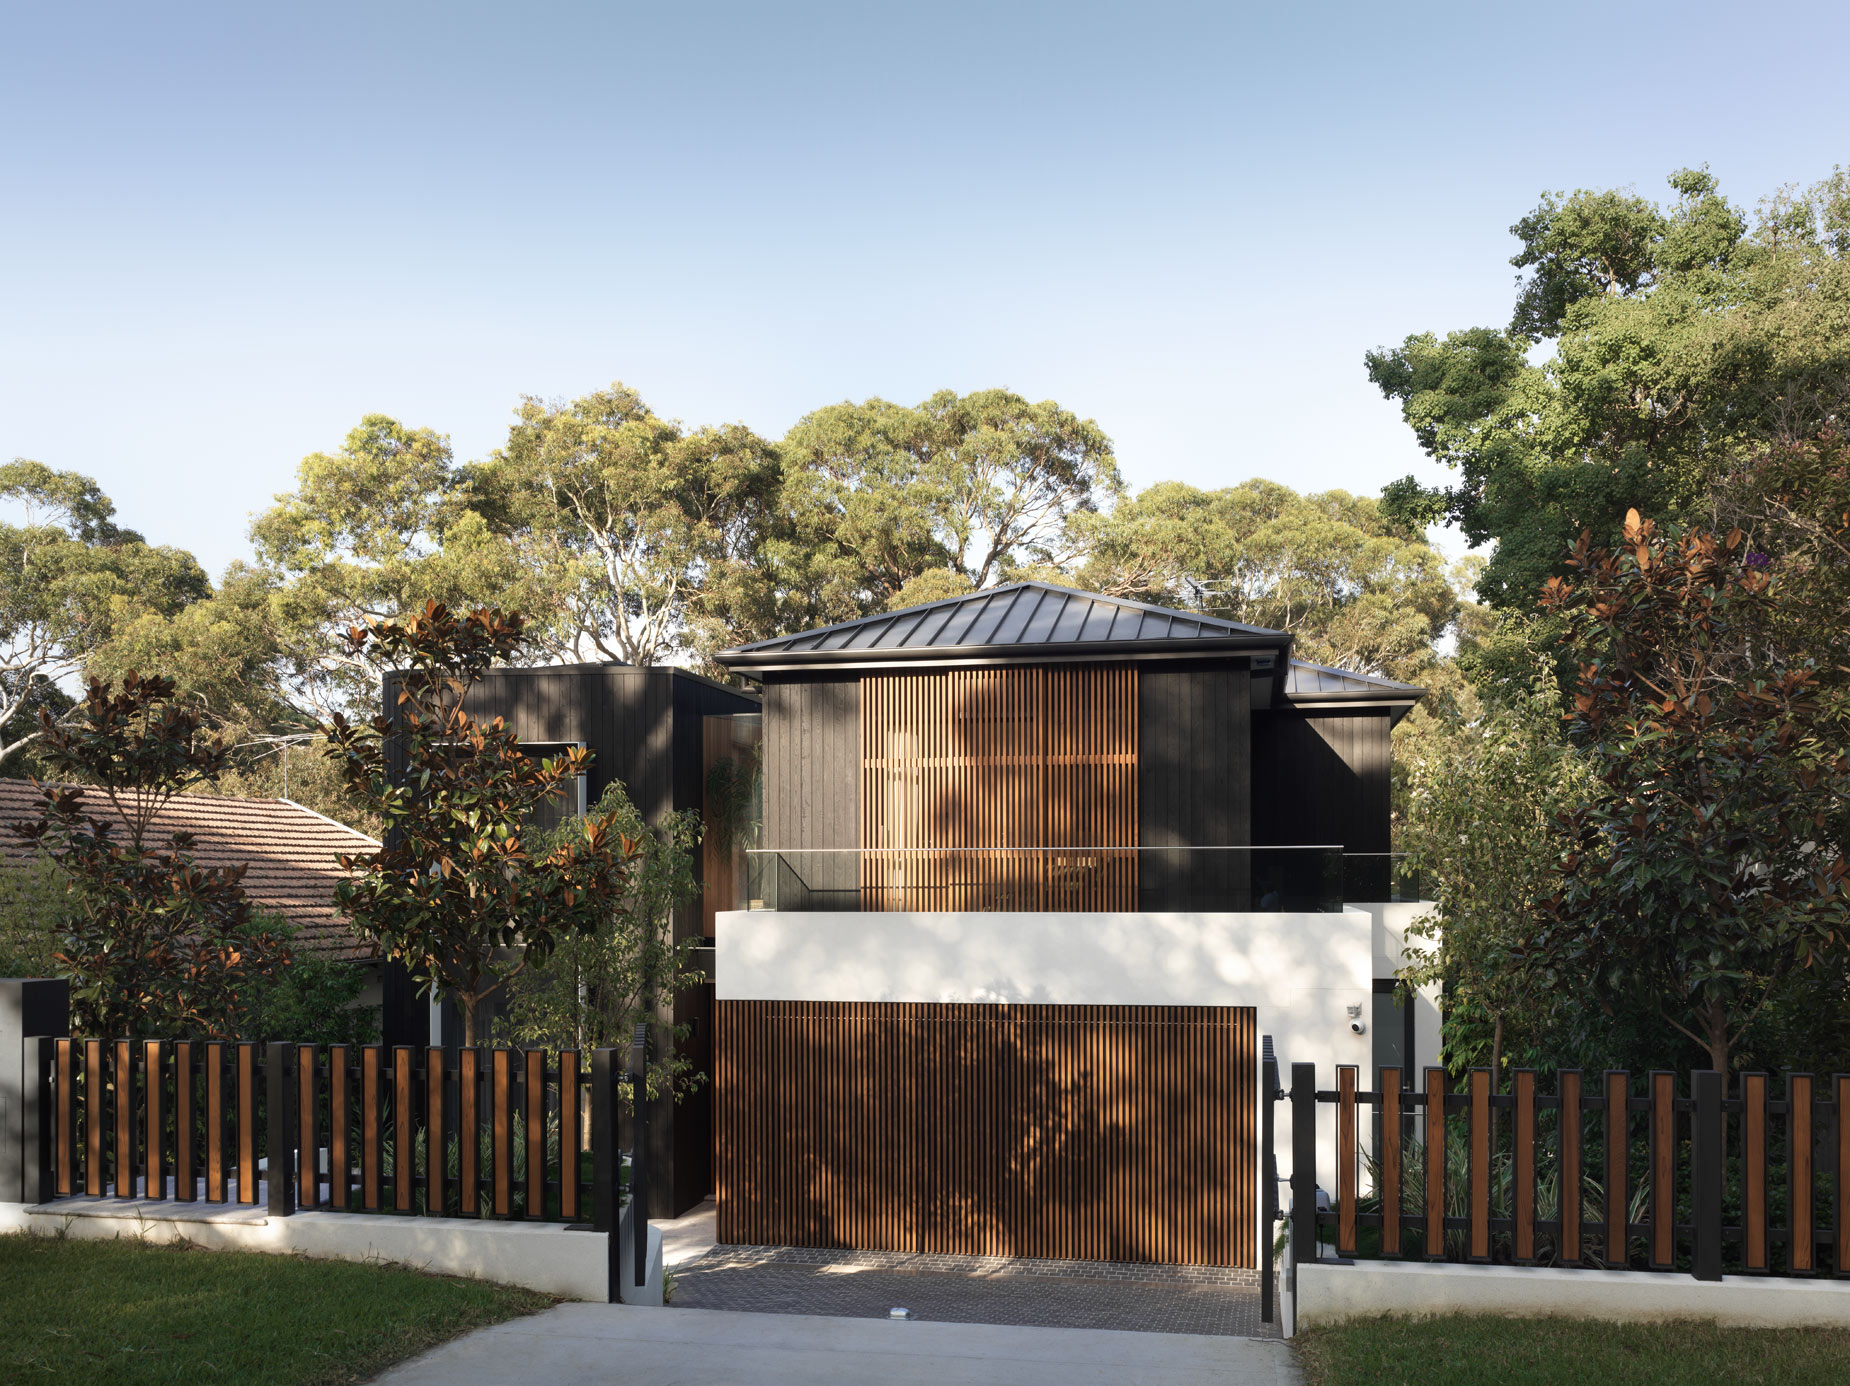 2_luke_butterly_architecture_photography_dieppe_design_austin_house_sydney